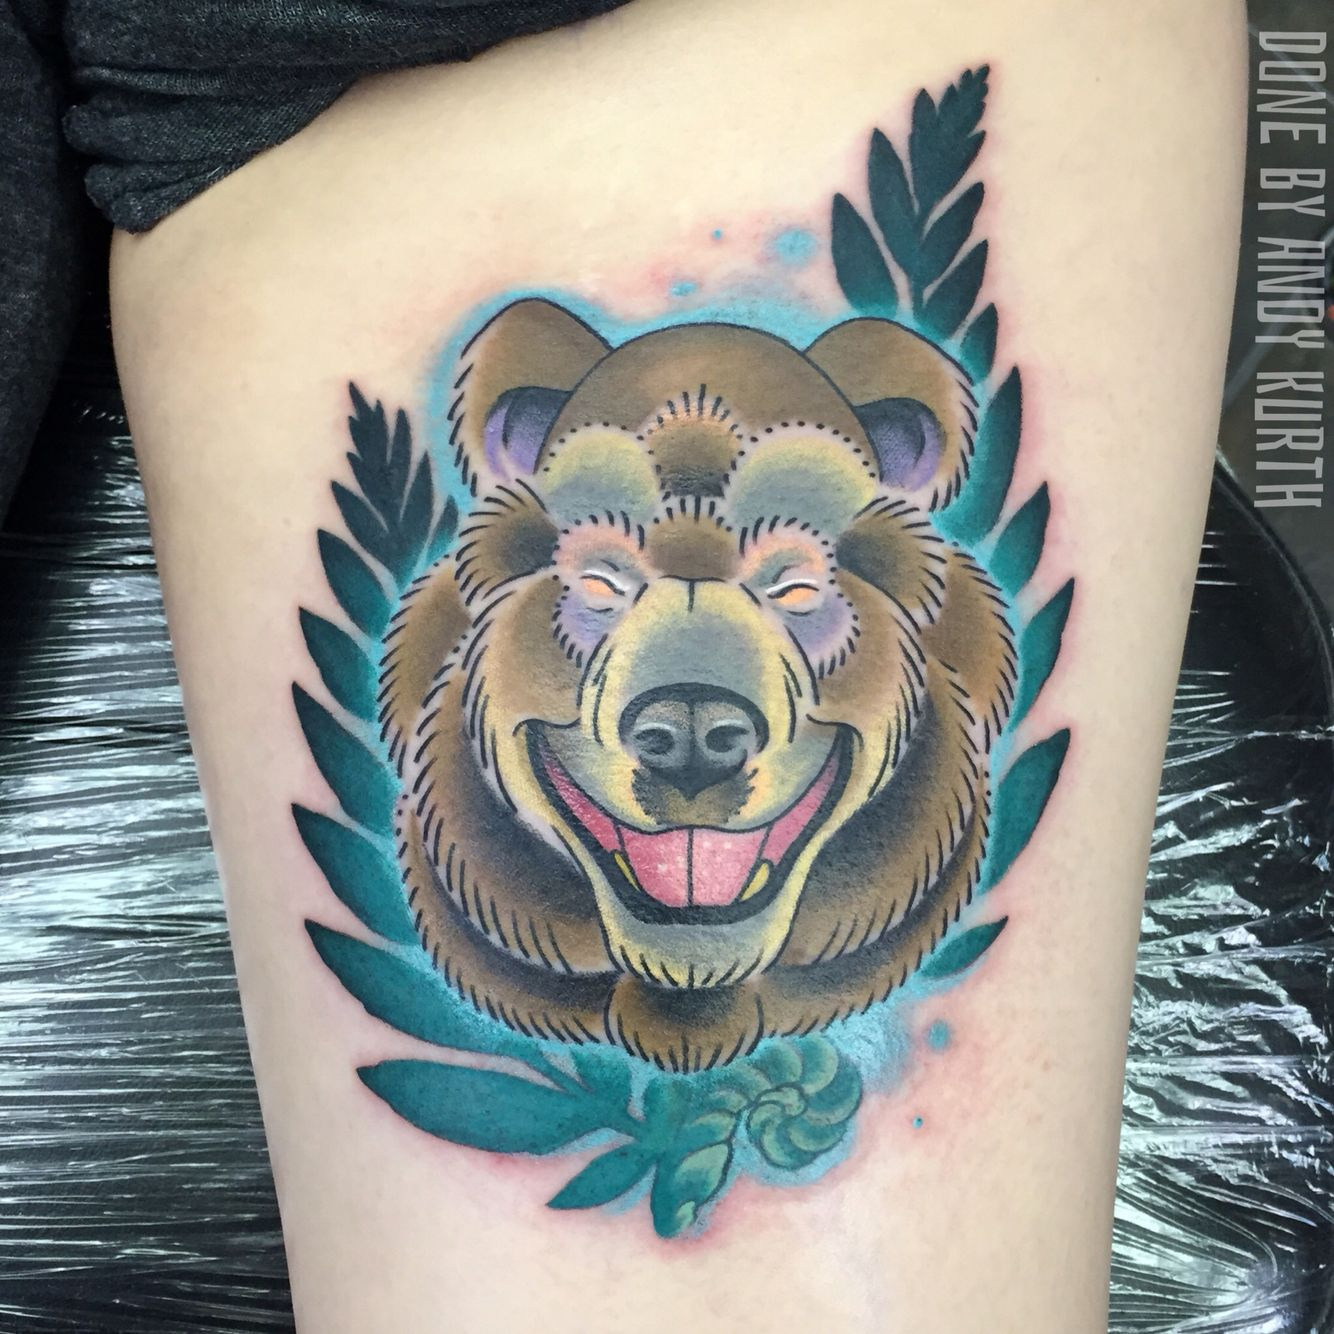 Electric chair tattoo - Happy Bear Done By Andy Kurth At Electric Chair Tattoo In Clio Michigan